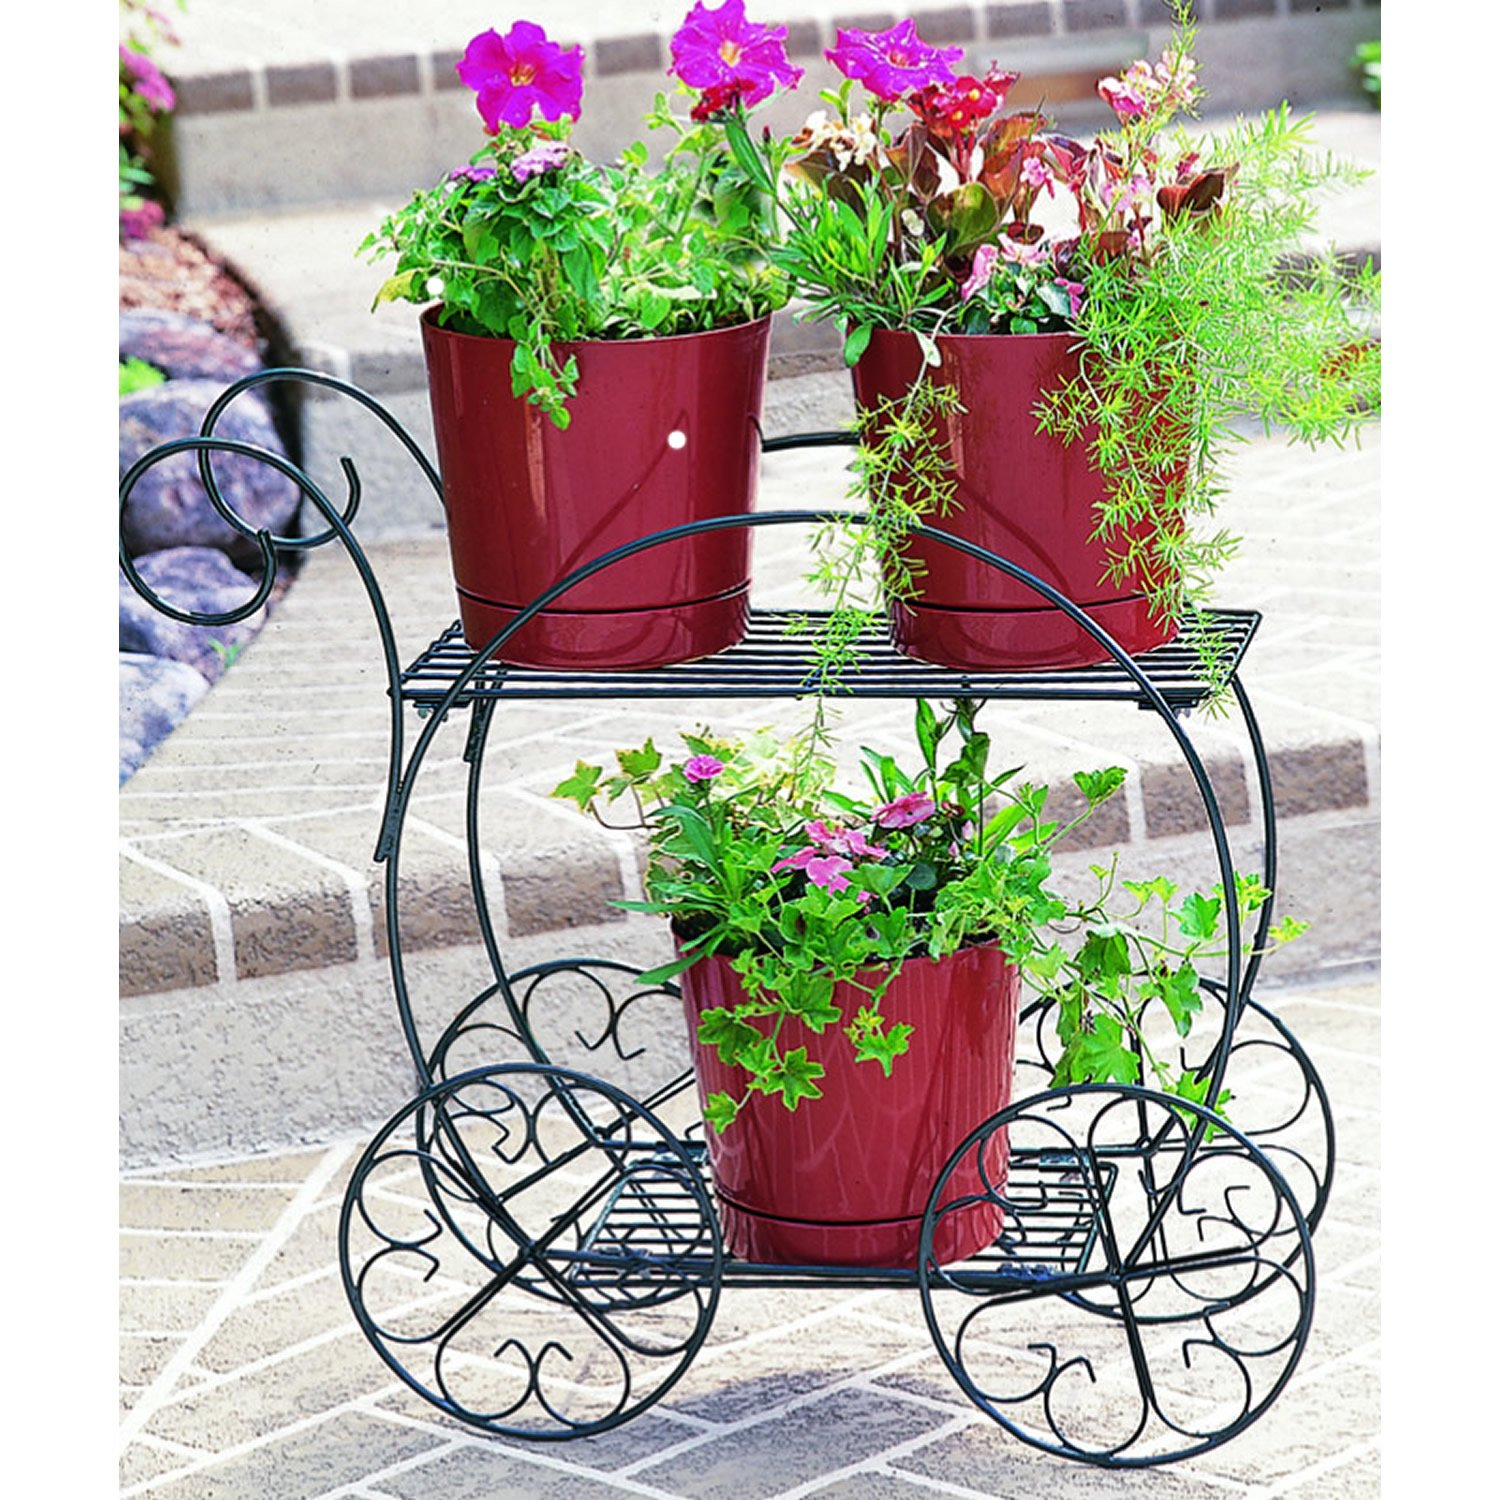 Green Metal Plant Stand Bicycle Flower Cart Pot Plant Wedding Love Garden Yard